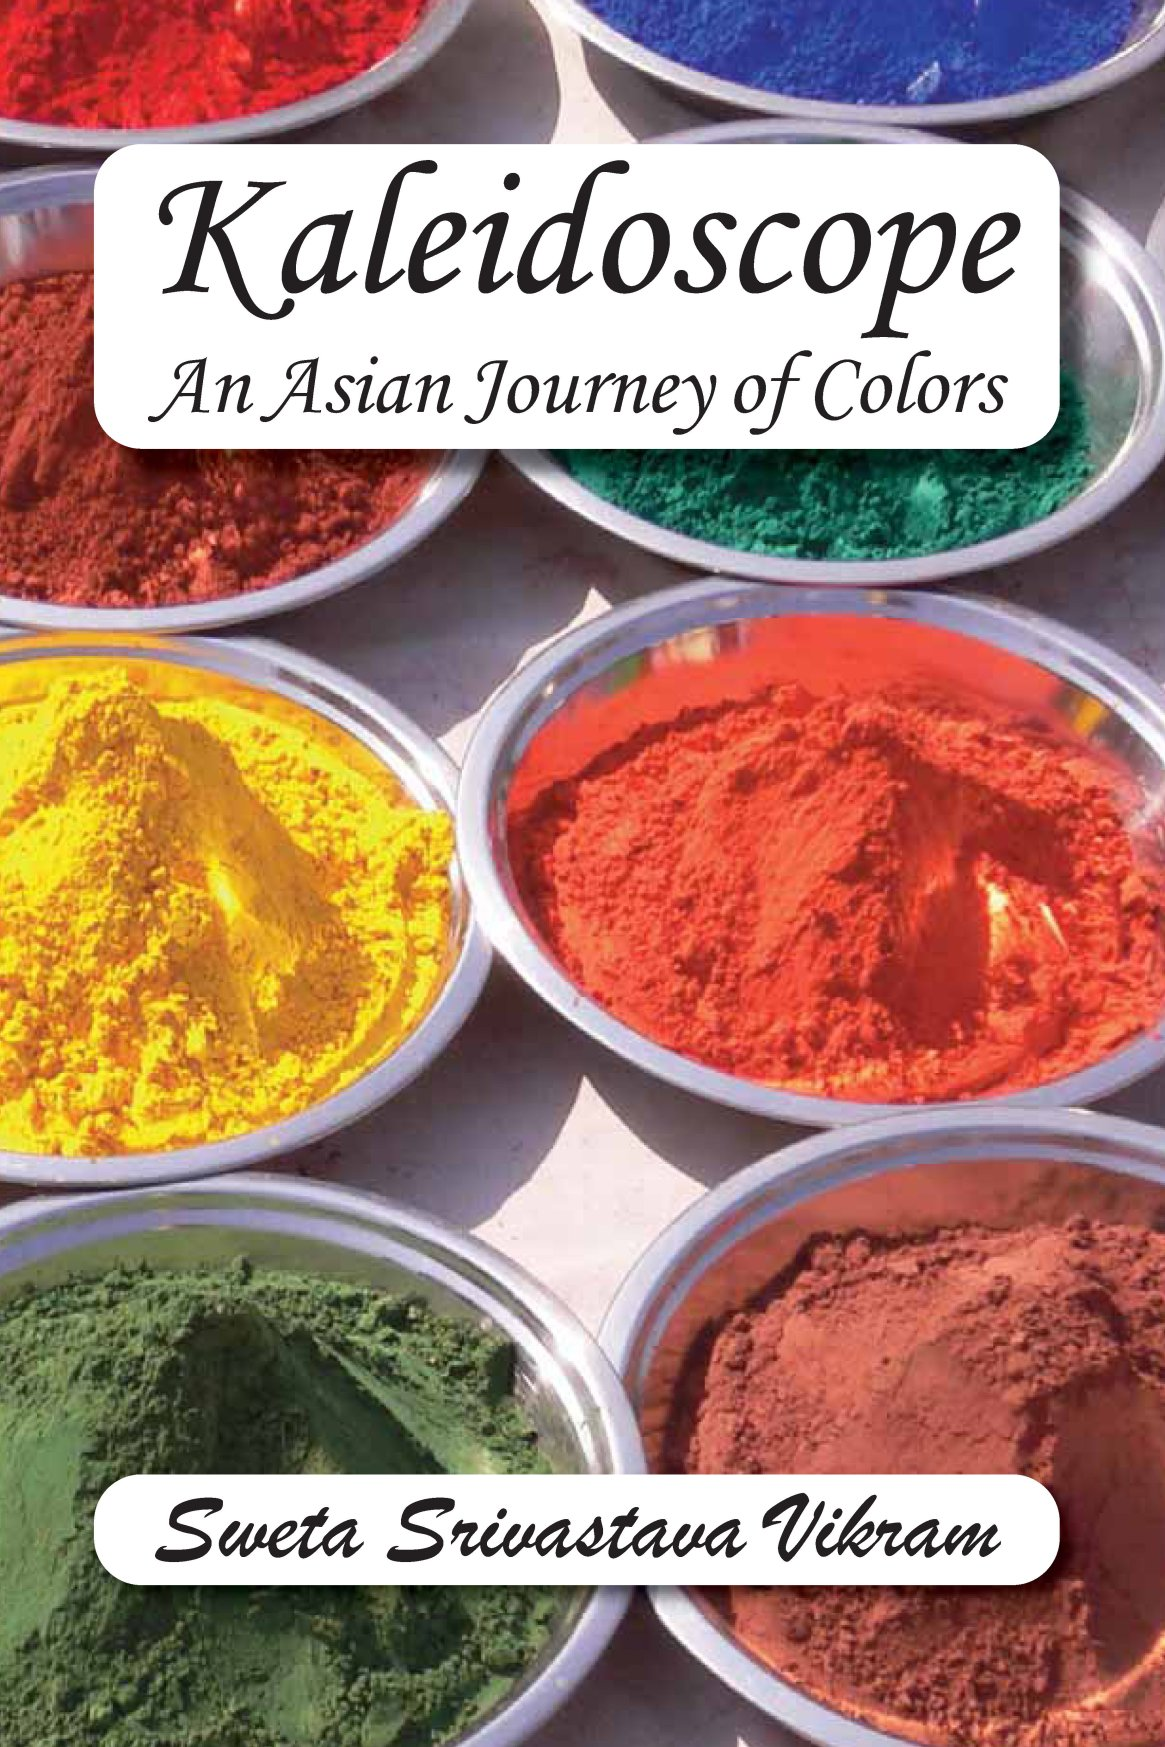 Kaleidoscope: An Asian Journey with Colors 978-1-61599-034-4